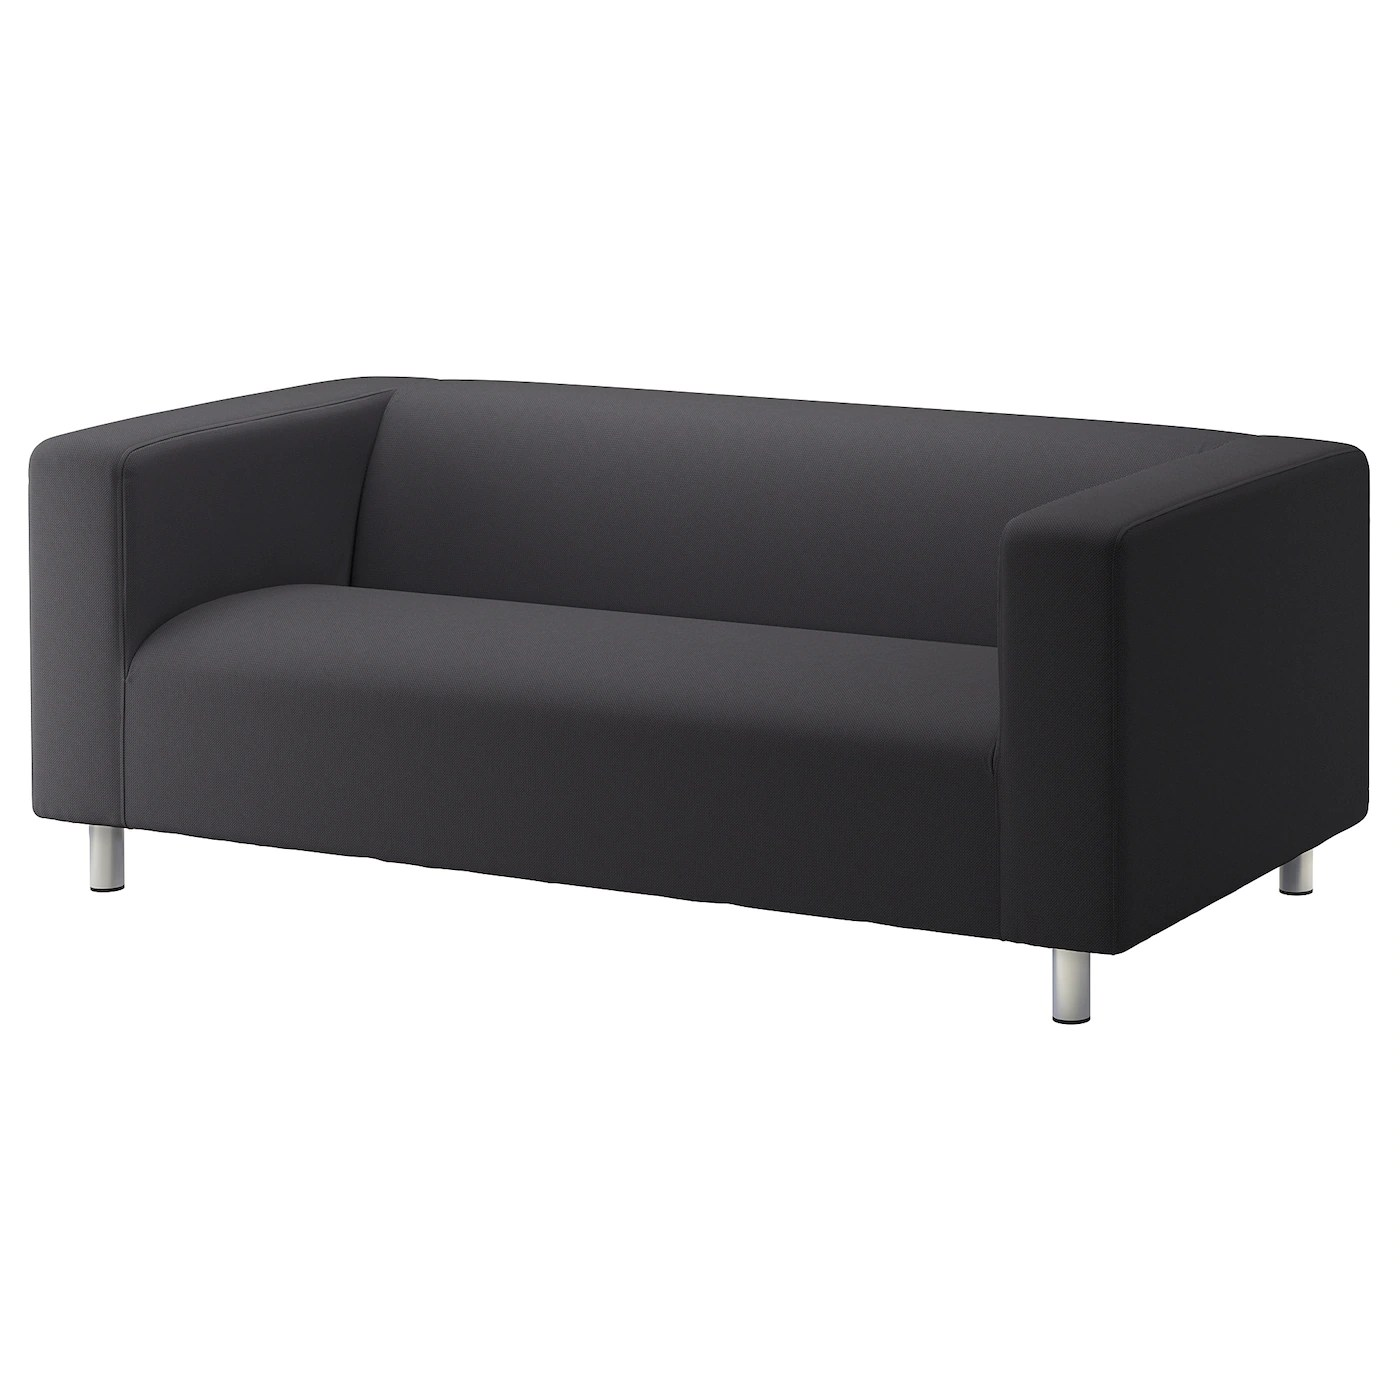 2 Seater Ikea Sofa Cover Klippan 2 Seat Sofa Kabusa Dark Grey